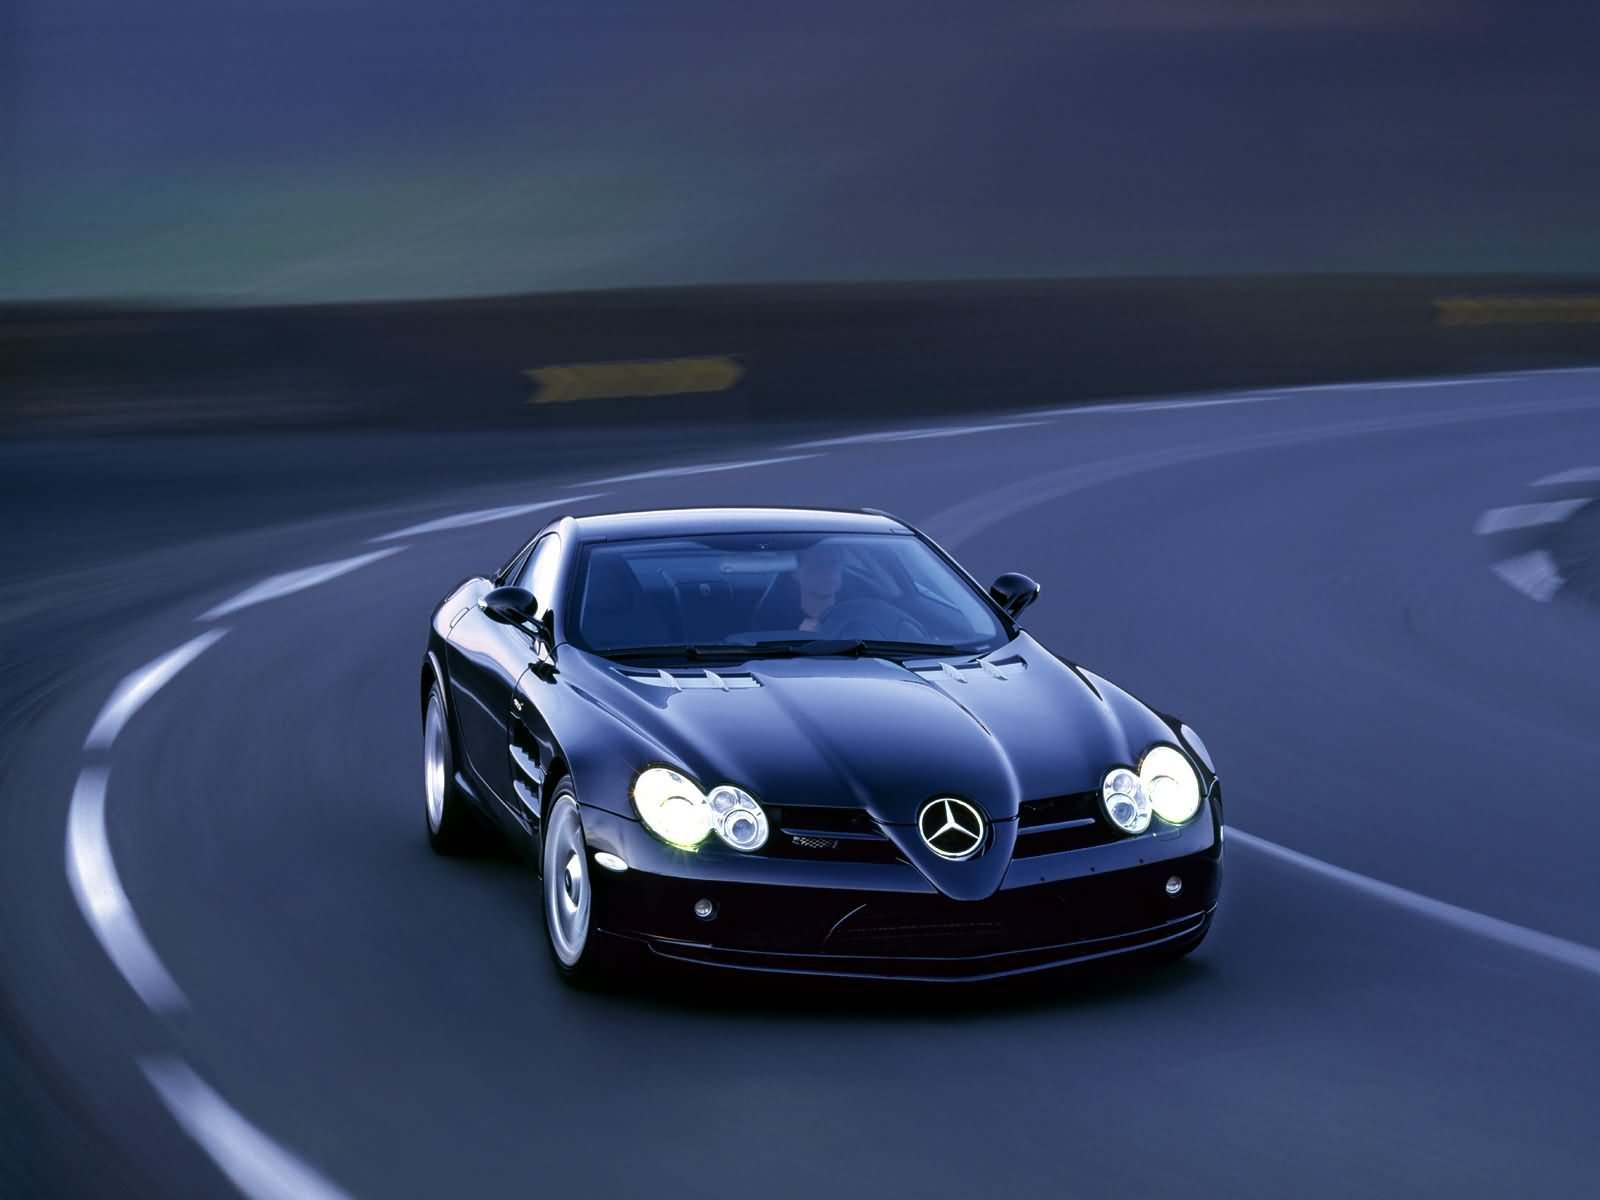 Latest Mercedes Benz In 2014 10 New Cars Mercedes Benz Mid Free Download